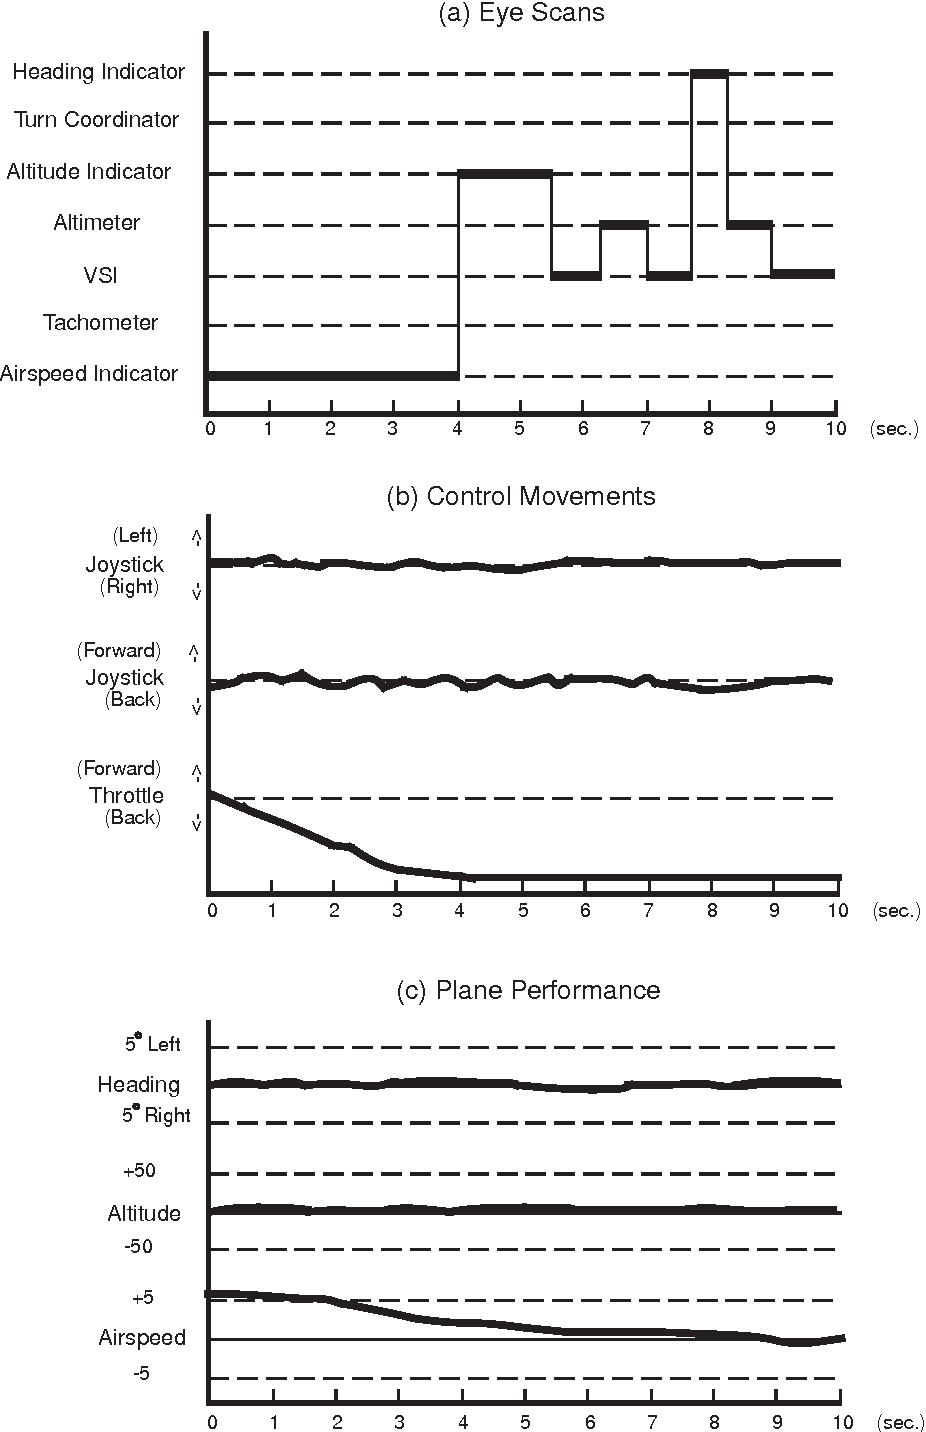 Figures 3(a)^(c). Example time-synched empirical recordings of eye ¢xations, control movements, and plane performance for the ¢rst 10 sec of Segment 1.